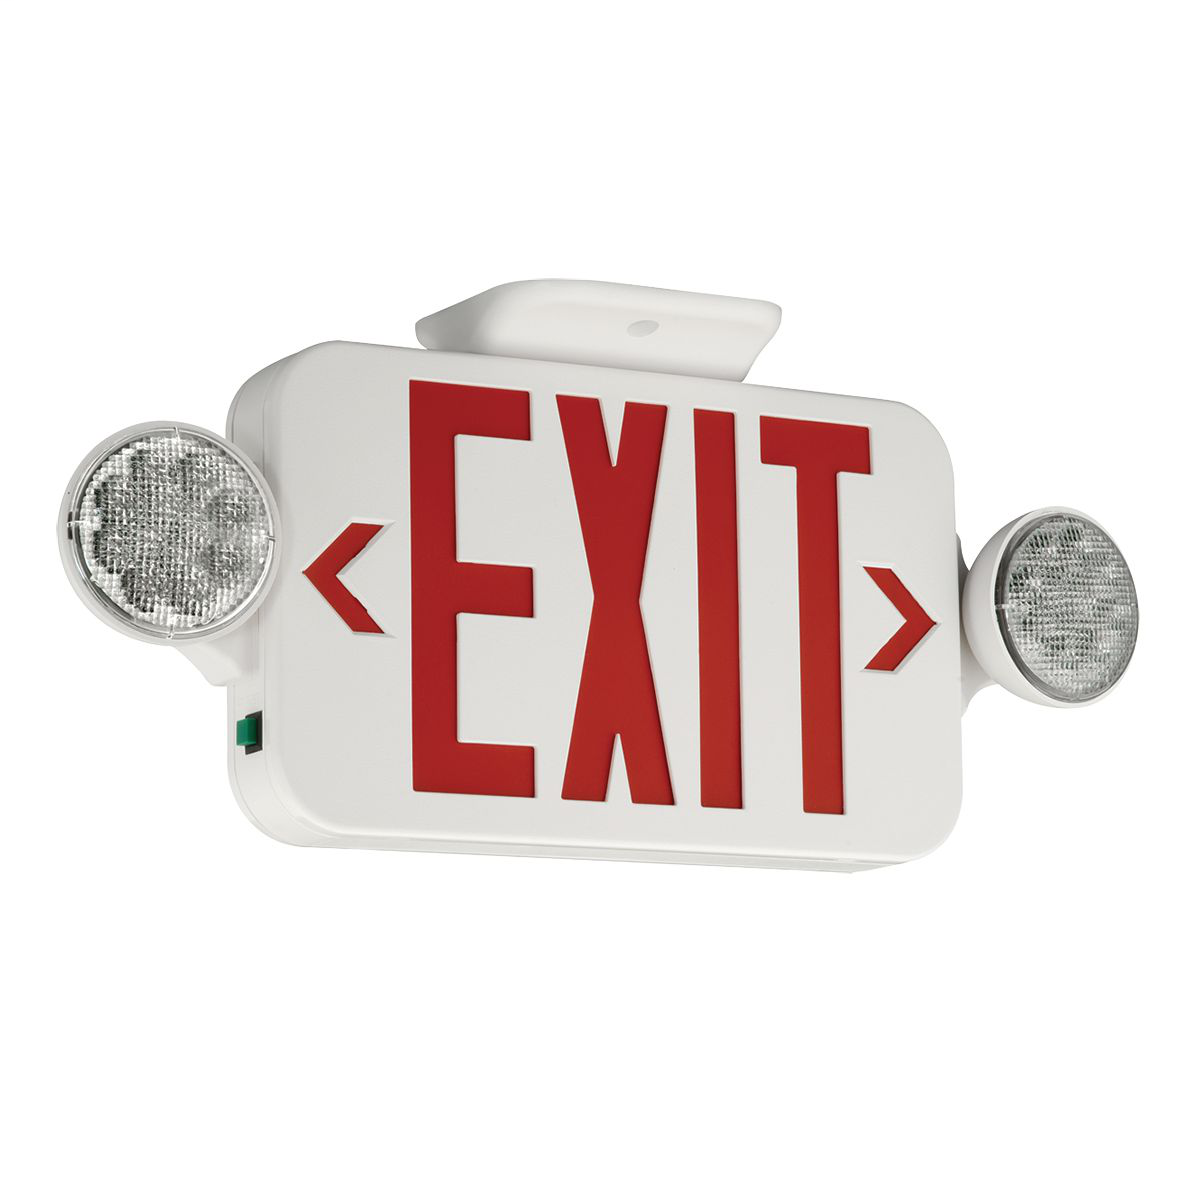 COMP CCR LED EXIT EBU 2 HEAD COMBO SIGN